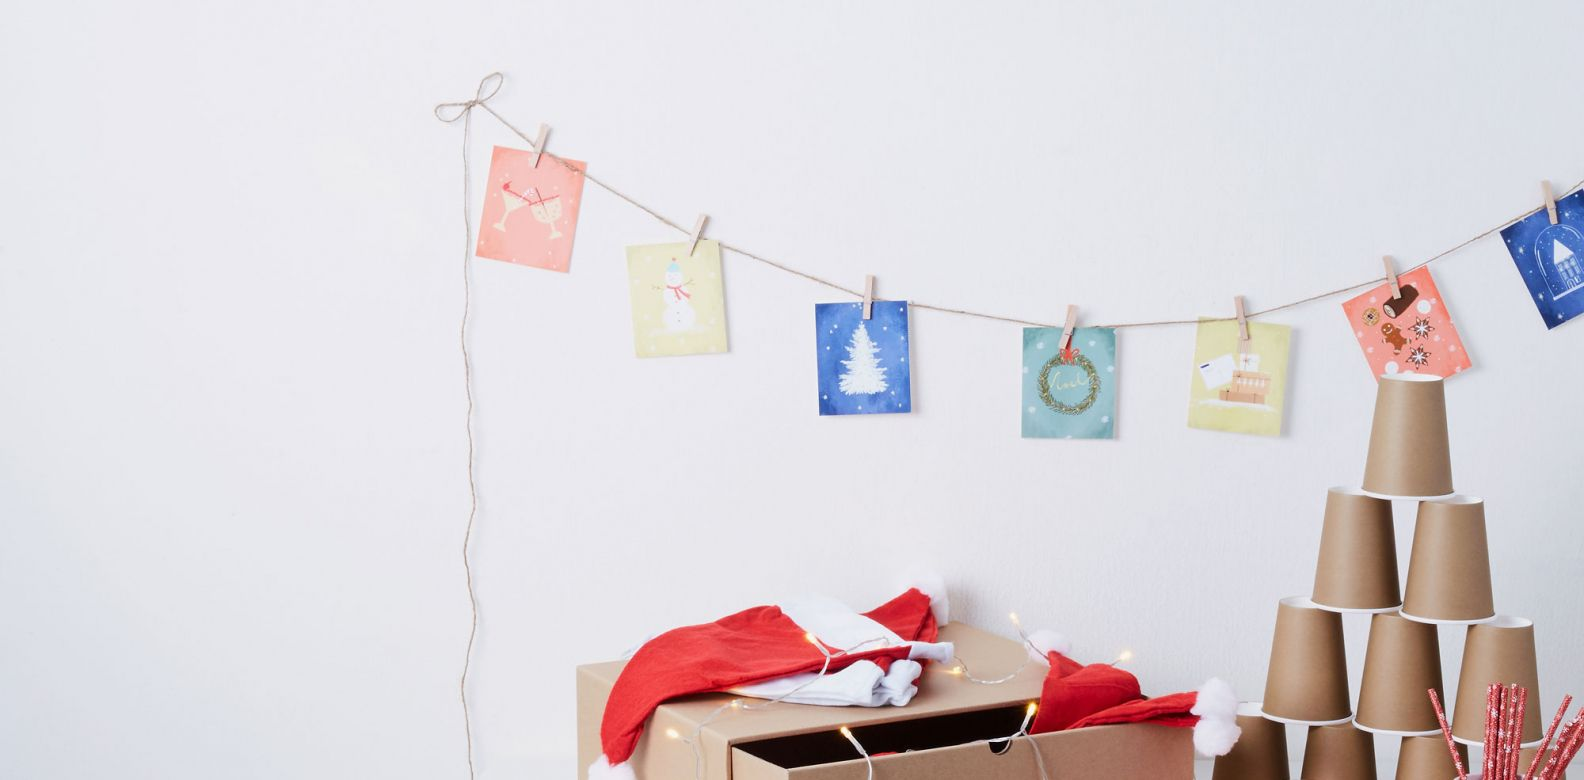 The Christmas Set comes with a a party set to deck up your home